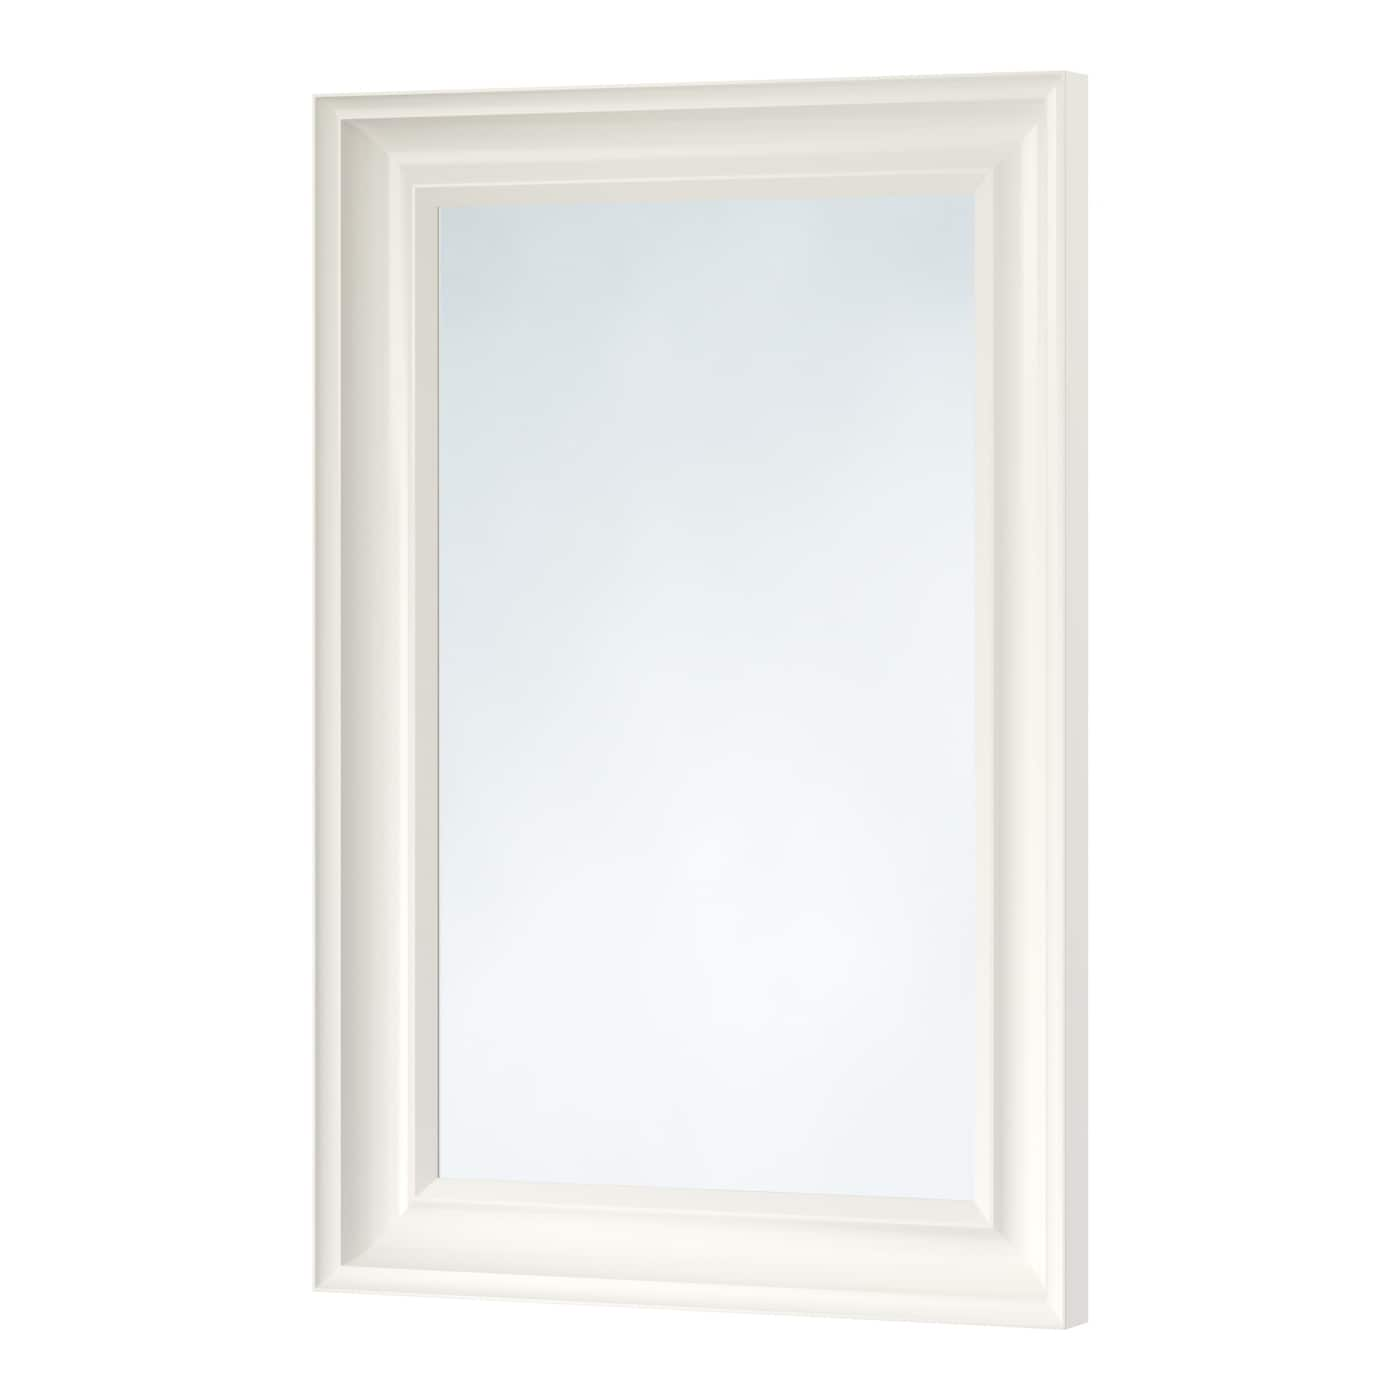 Hemnes mirror white 60x90 cm ikea for Spiegel 60x90